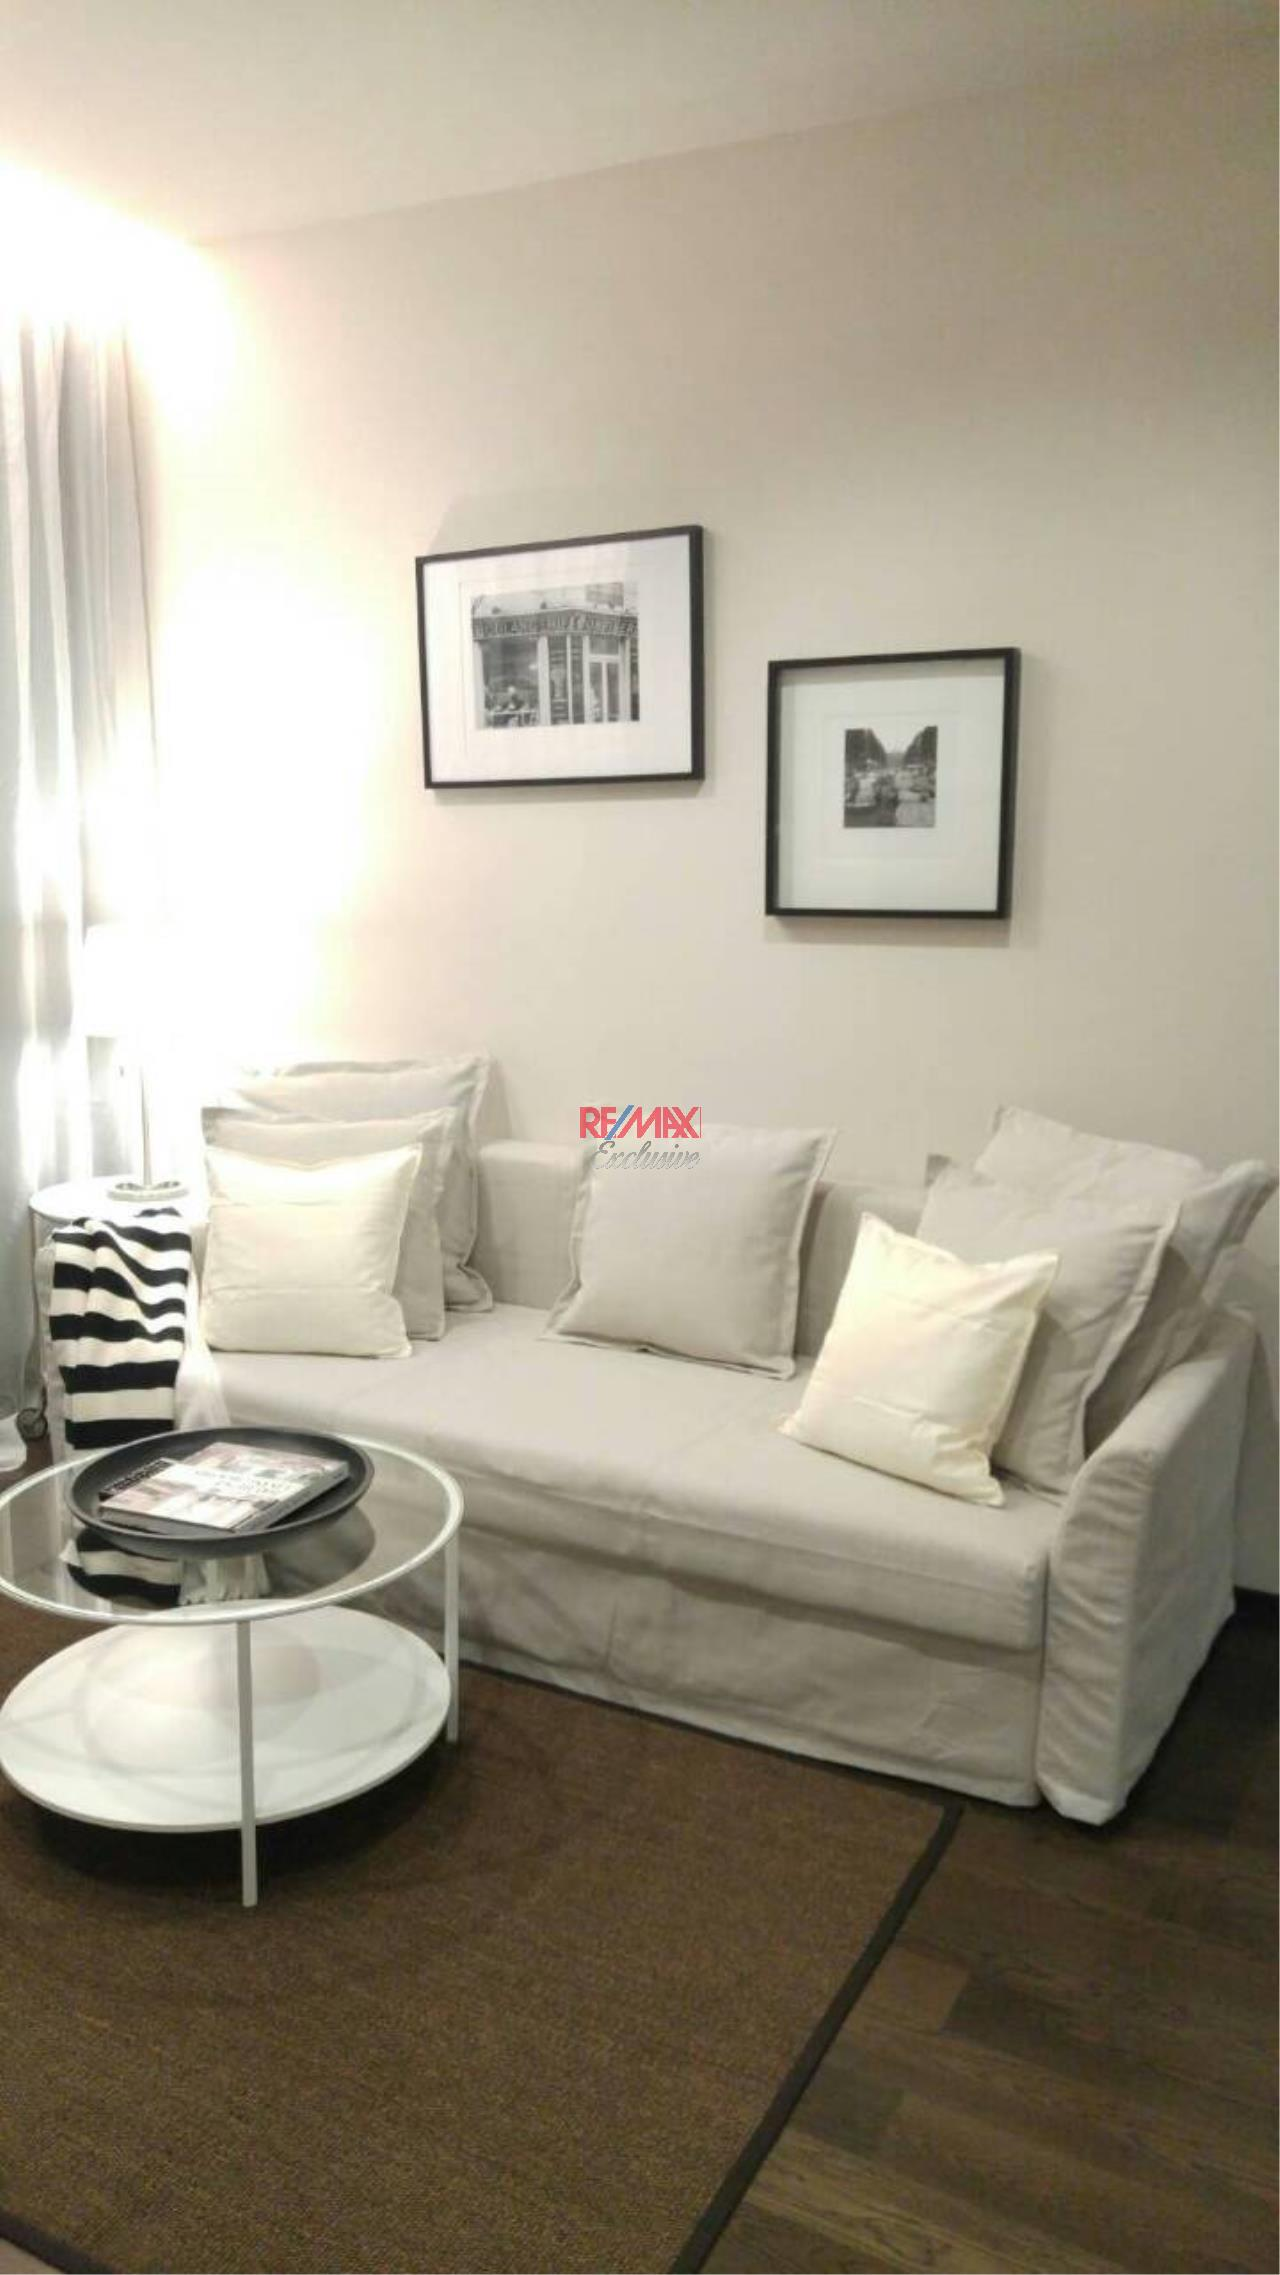 RE/MAX Exclusive Agency's The XXXIX By Sansiri 1 Bedroom For Sale with Tenant 15,200,000 THB!! 17